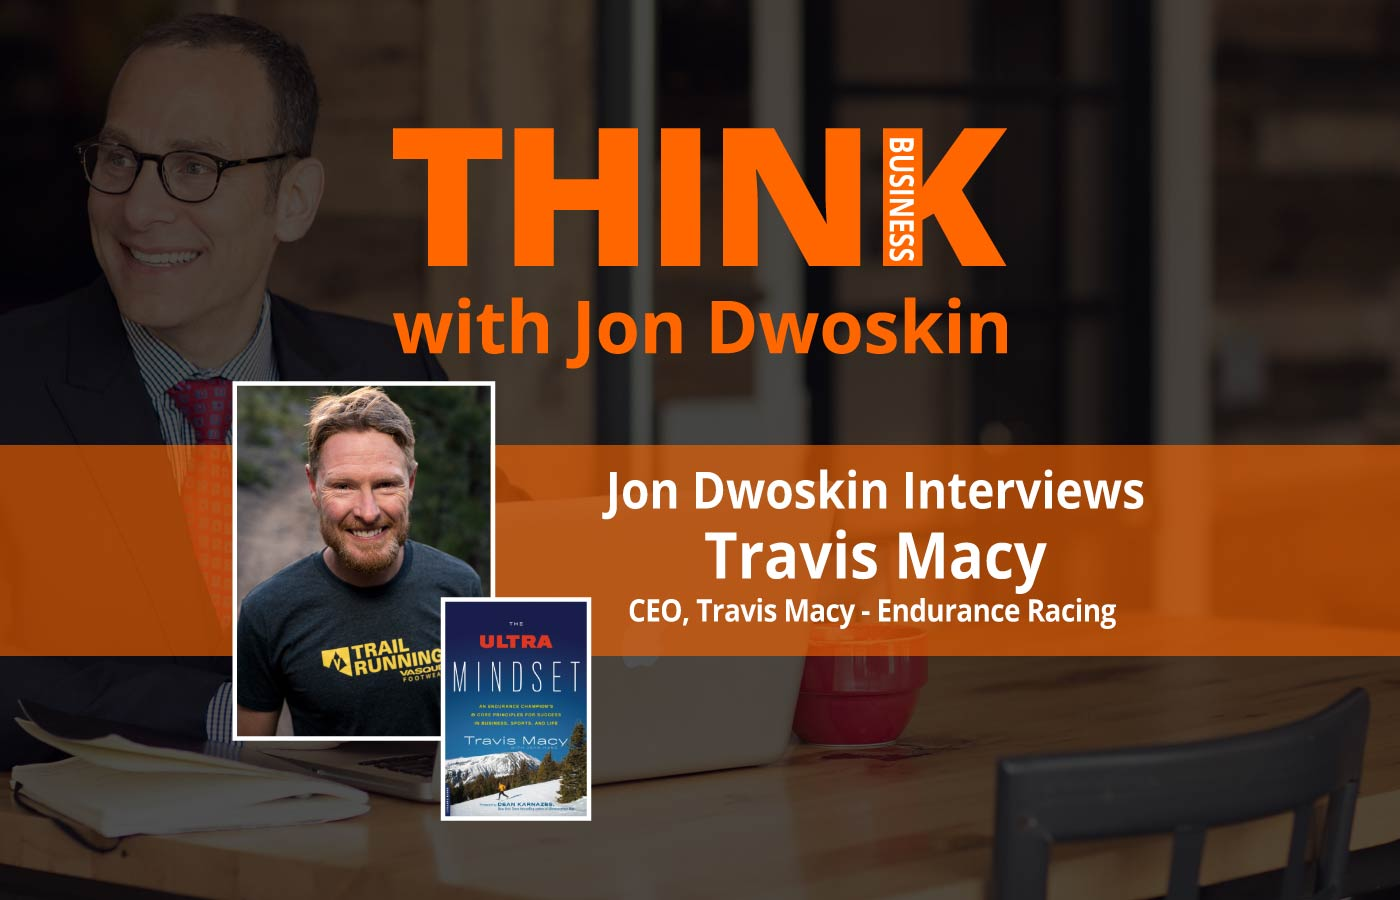 THINK Business Podcast: Jon Dwoskin Interviews Travis Macy, CEO, Travis Macy - Endurance Racing